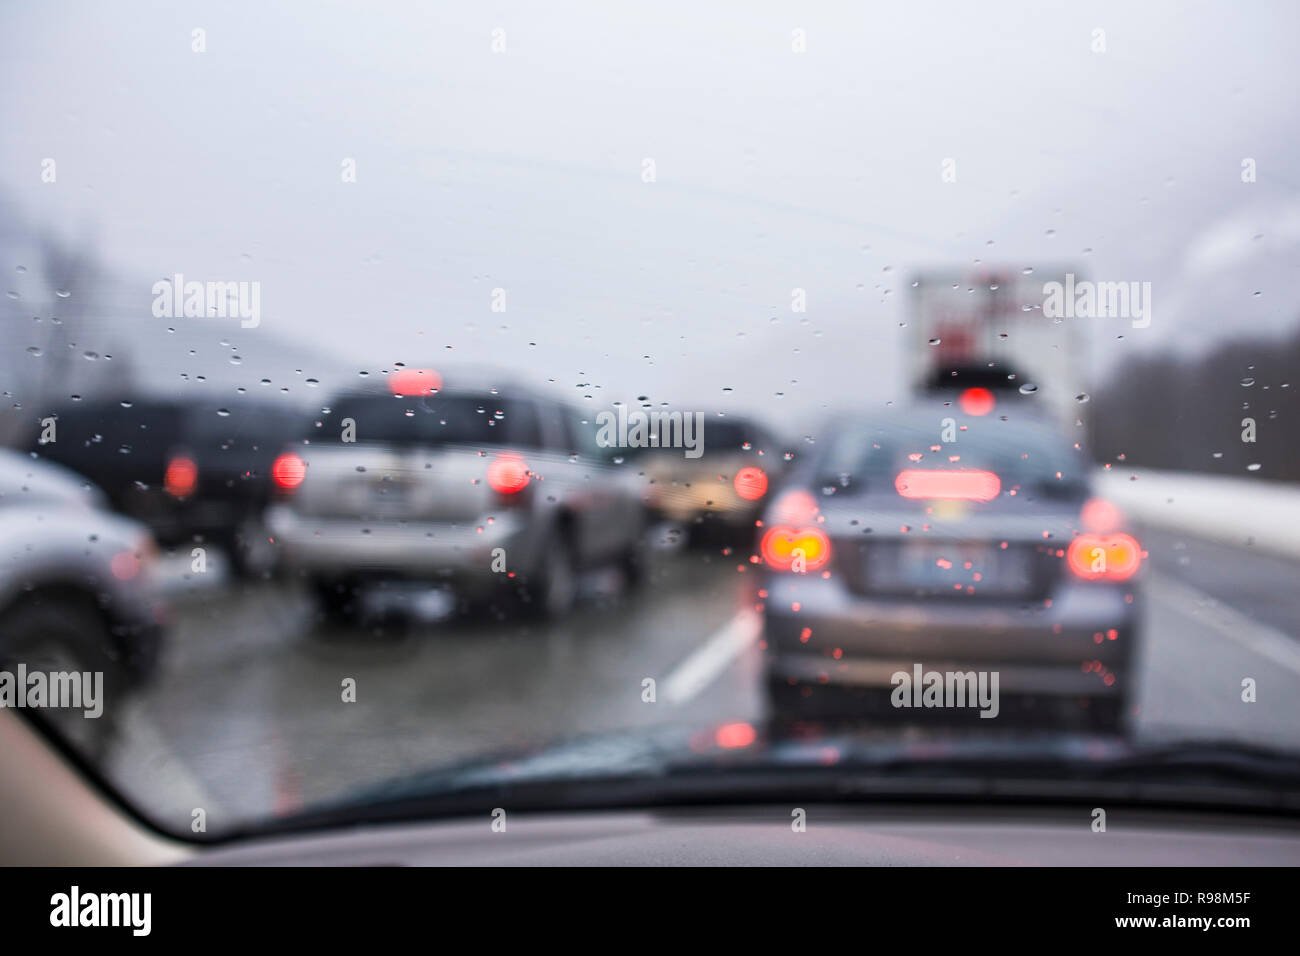 Looking out the wet windshield of a car at other cars  on a crowded roadway. - Stock Image